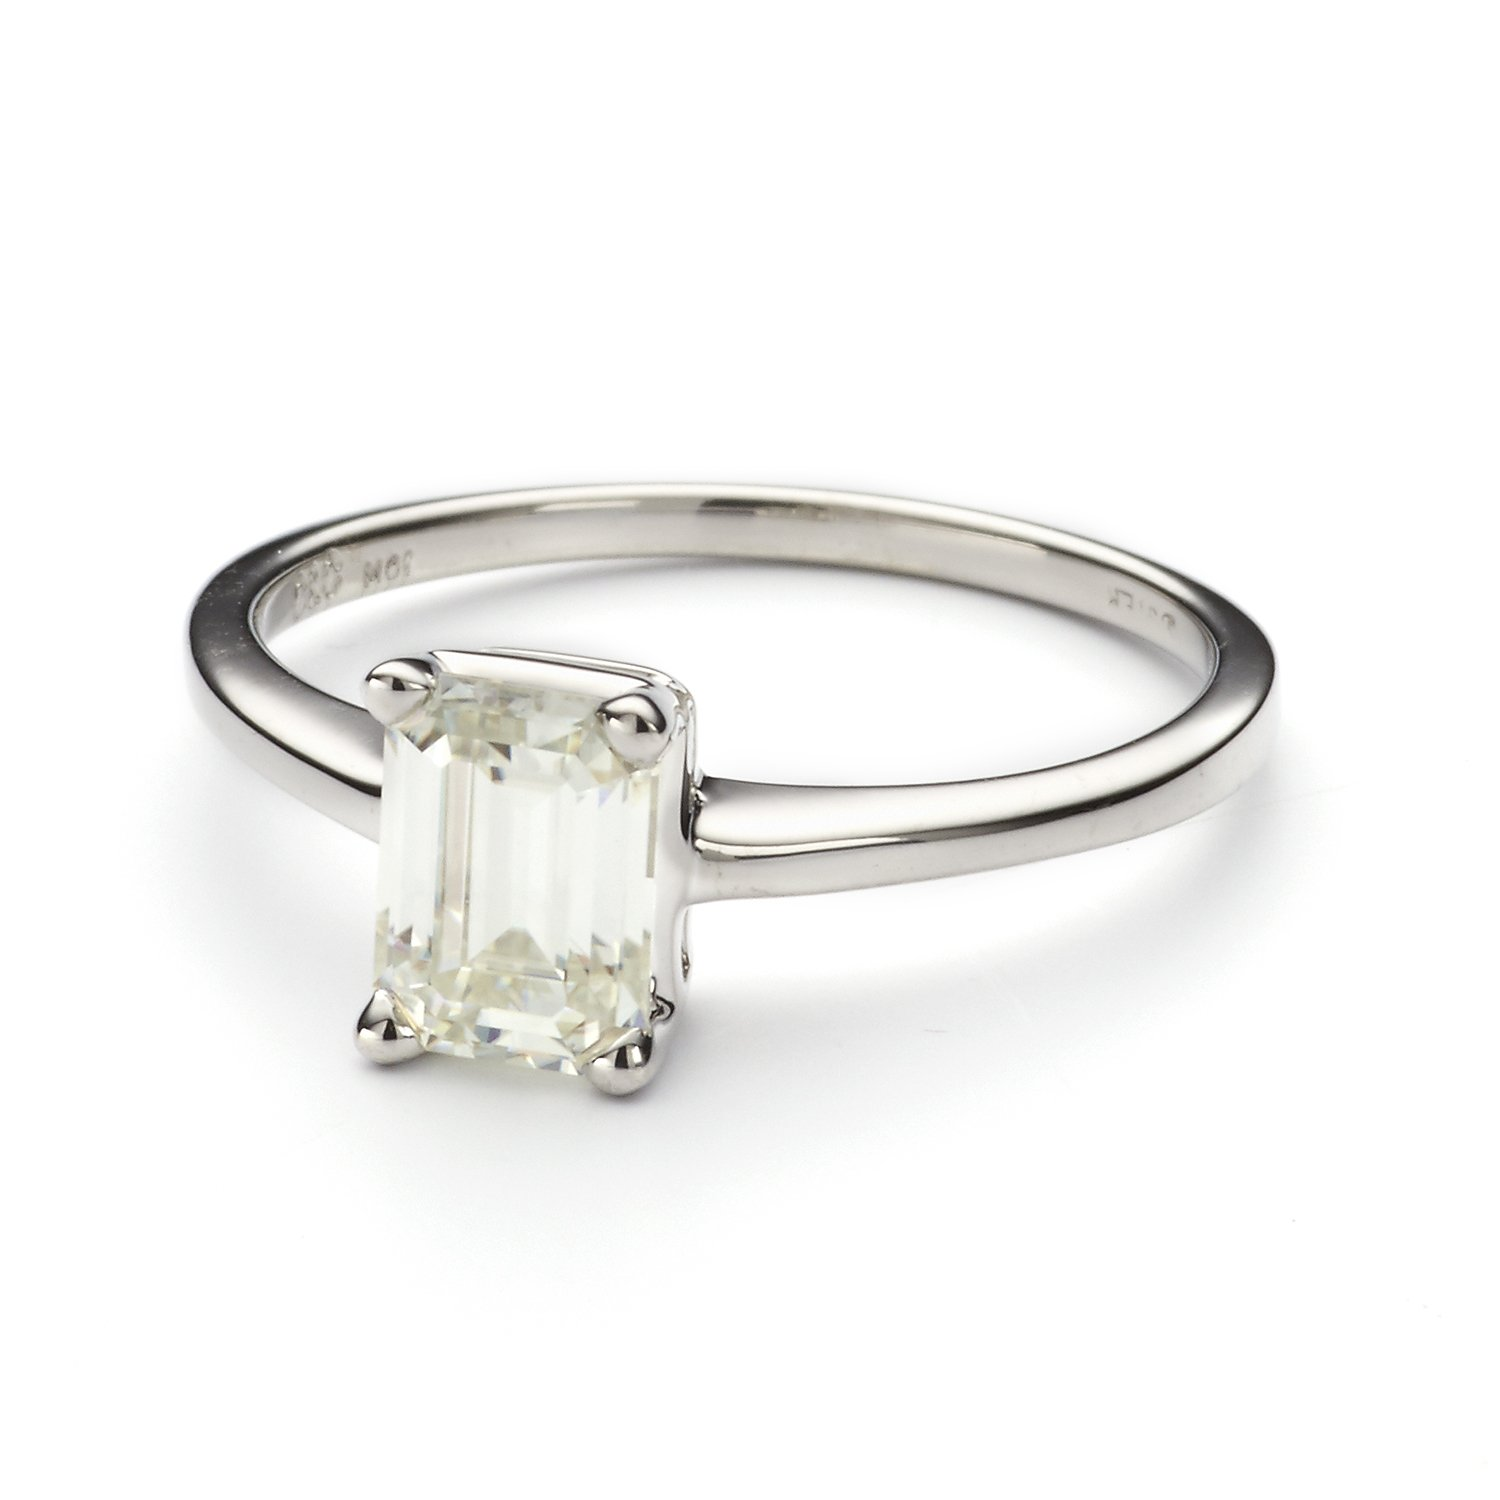 7x5mm Emerald Cut Moissanite Solitare Ring- Size 7, 1.01ct DEW By Charles & Colvard